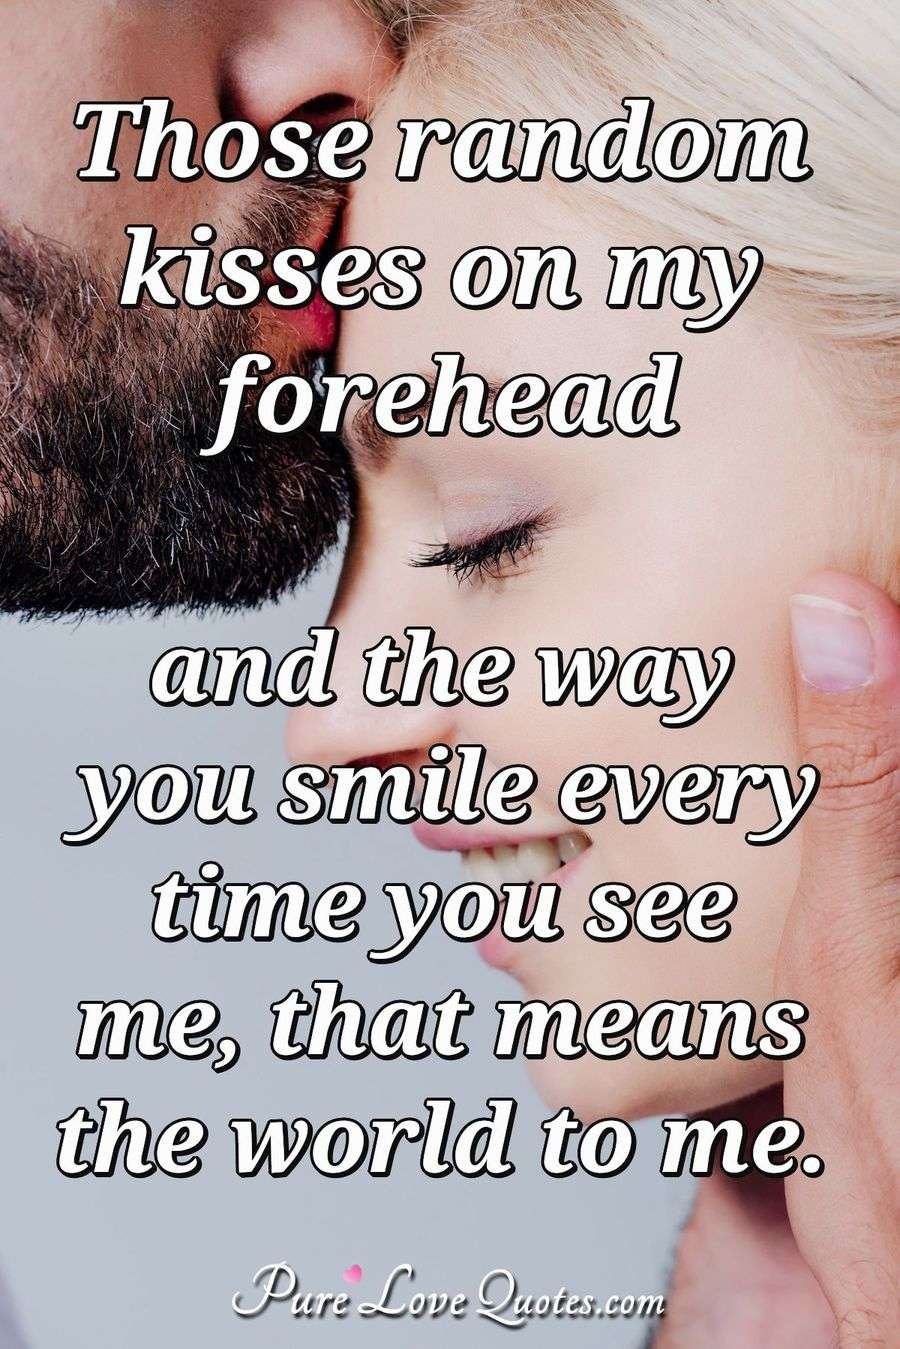 Those random kisses on my forehead and the way you smile every time you see me, that means the world to me.